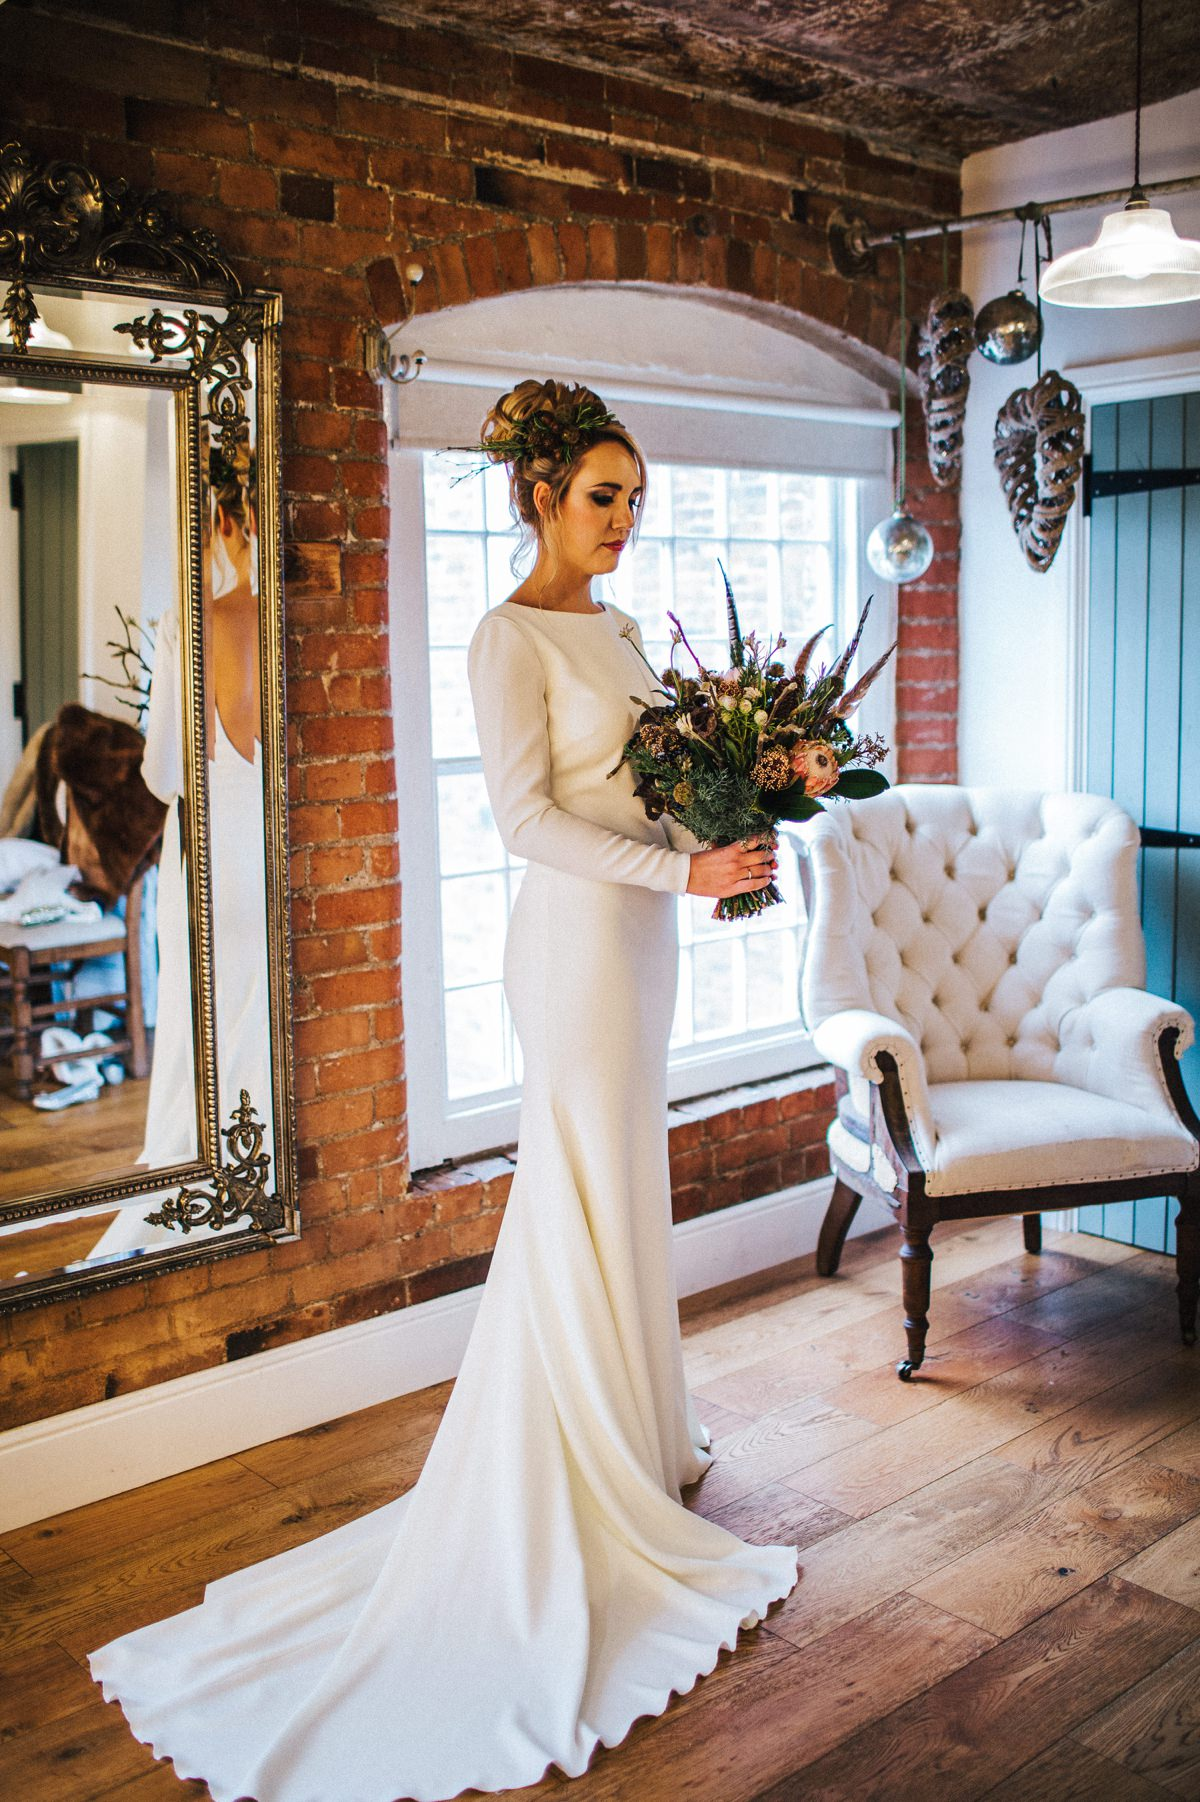 The Bride in her wedding dress - The West Mill